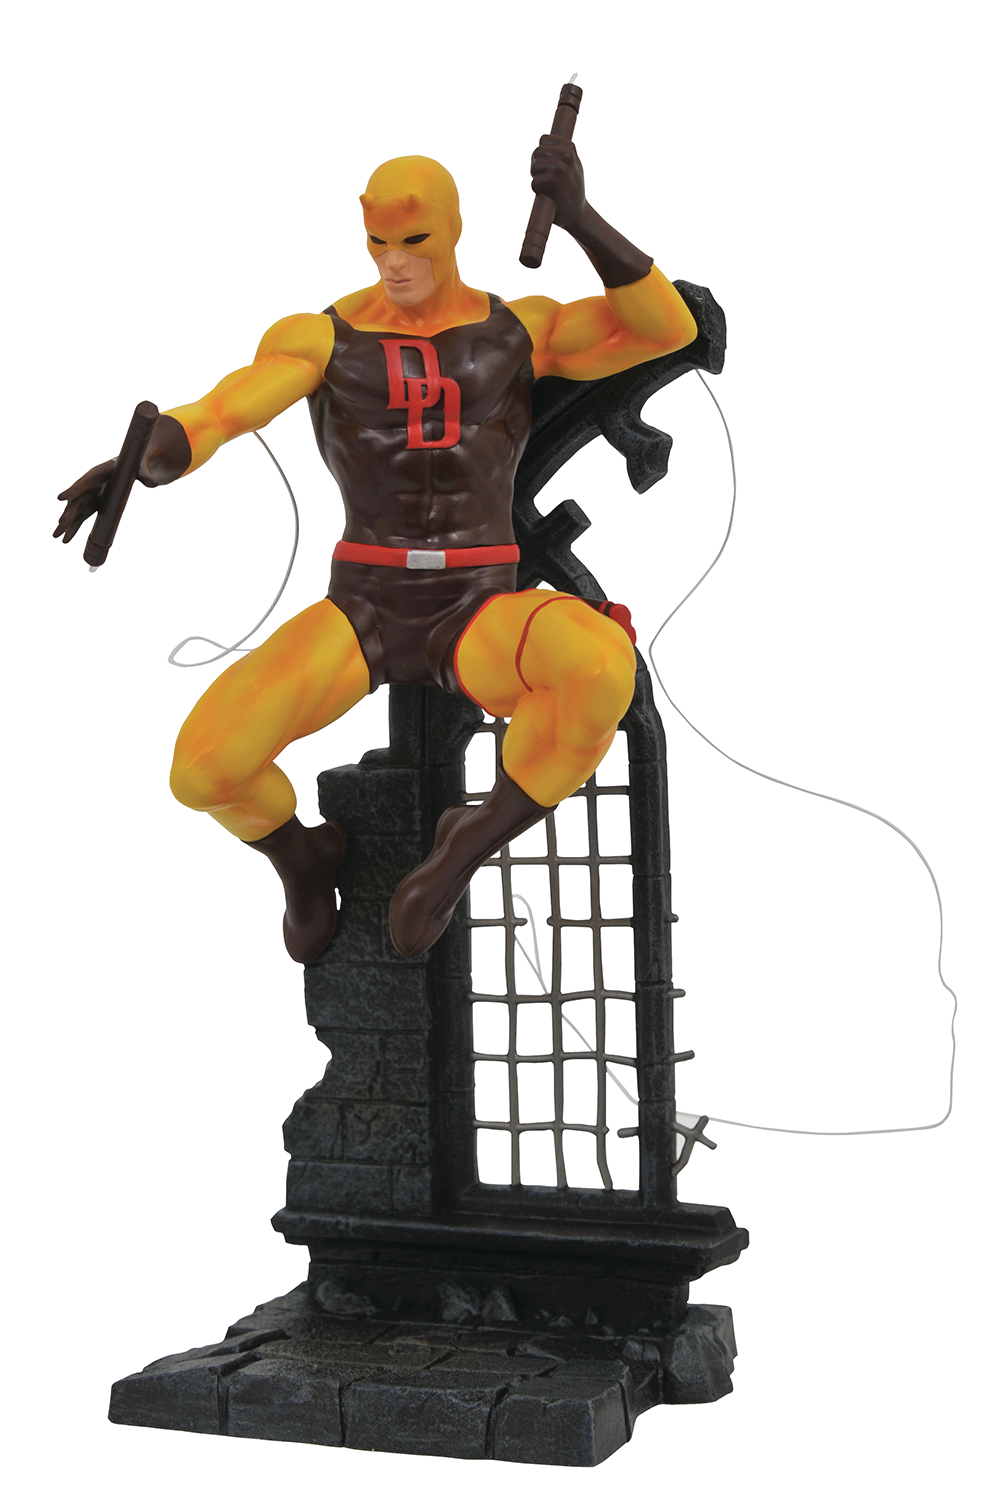 RETAILER SUMMIT 2019 MARVEL GALLERY YELLOW DAREDEVIL PVC FIG